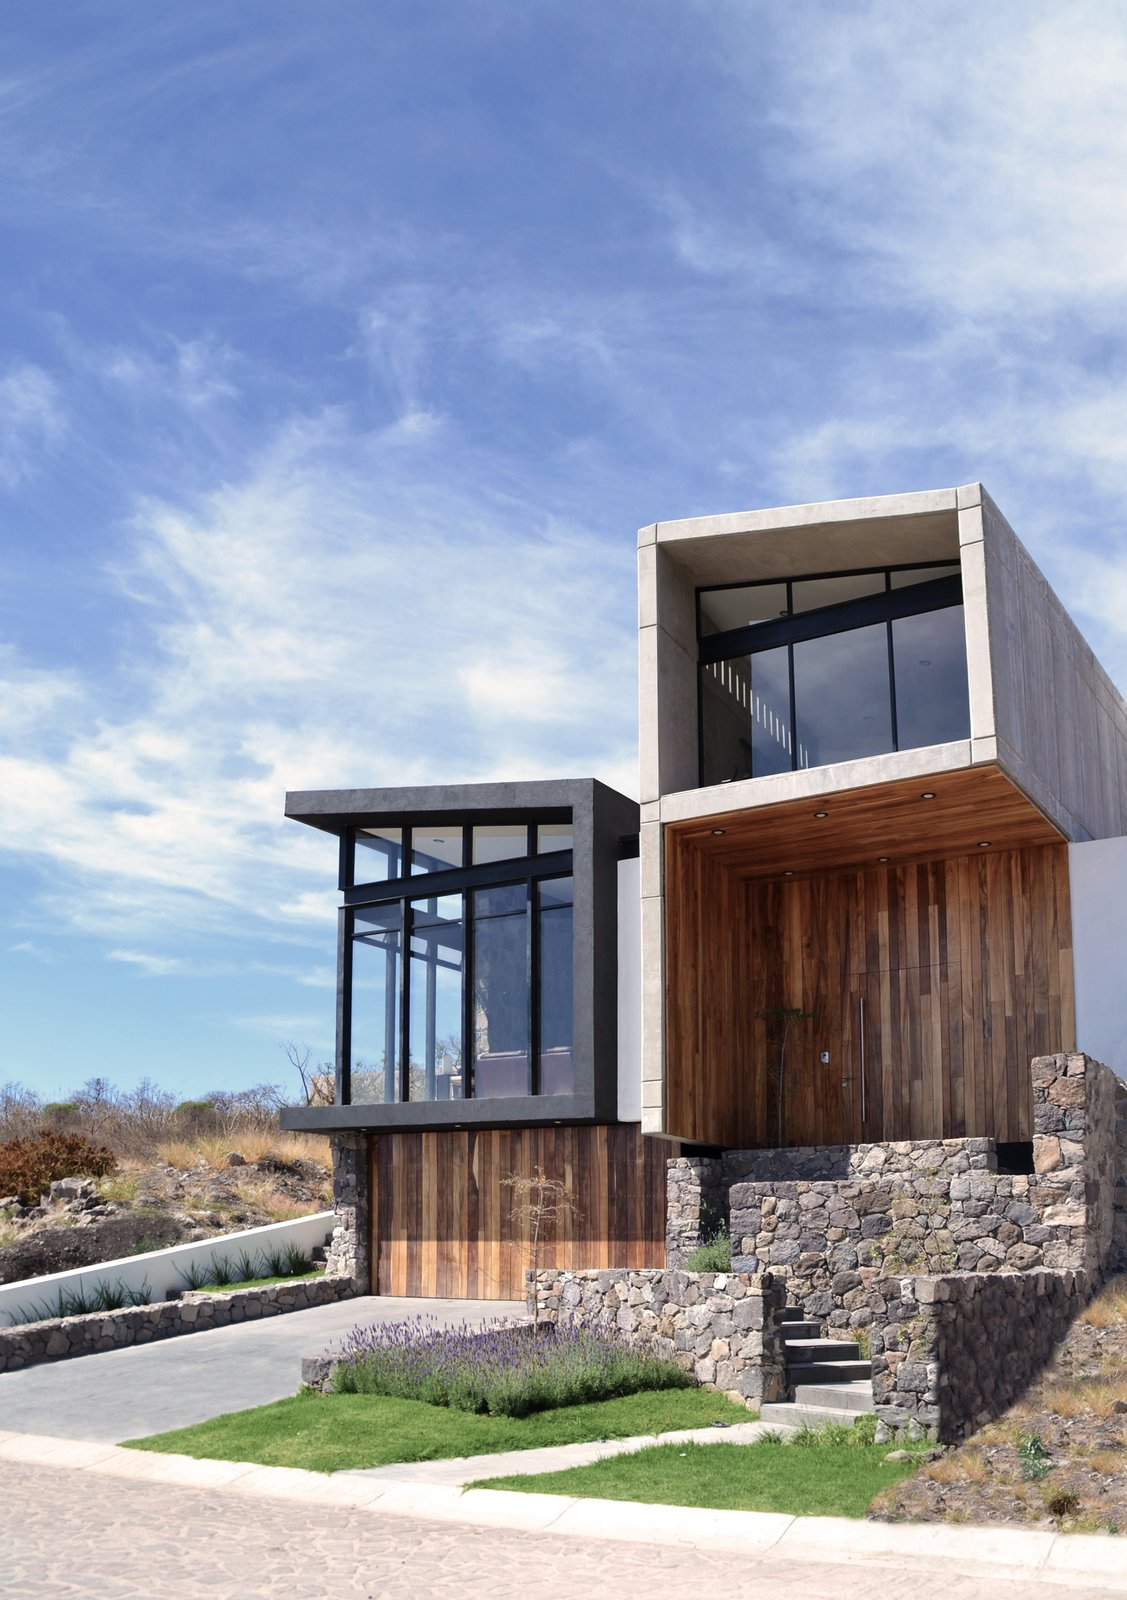 Exterior, Wood Siding Material, Metal Siding Material, and House Building Type East Facade  Casa AB by e|arquitectos